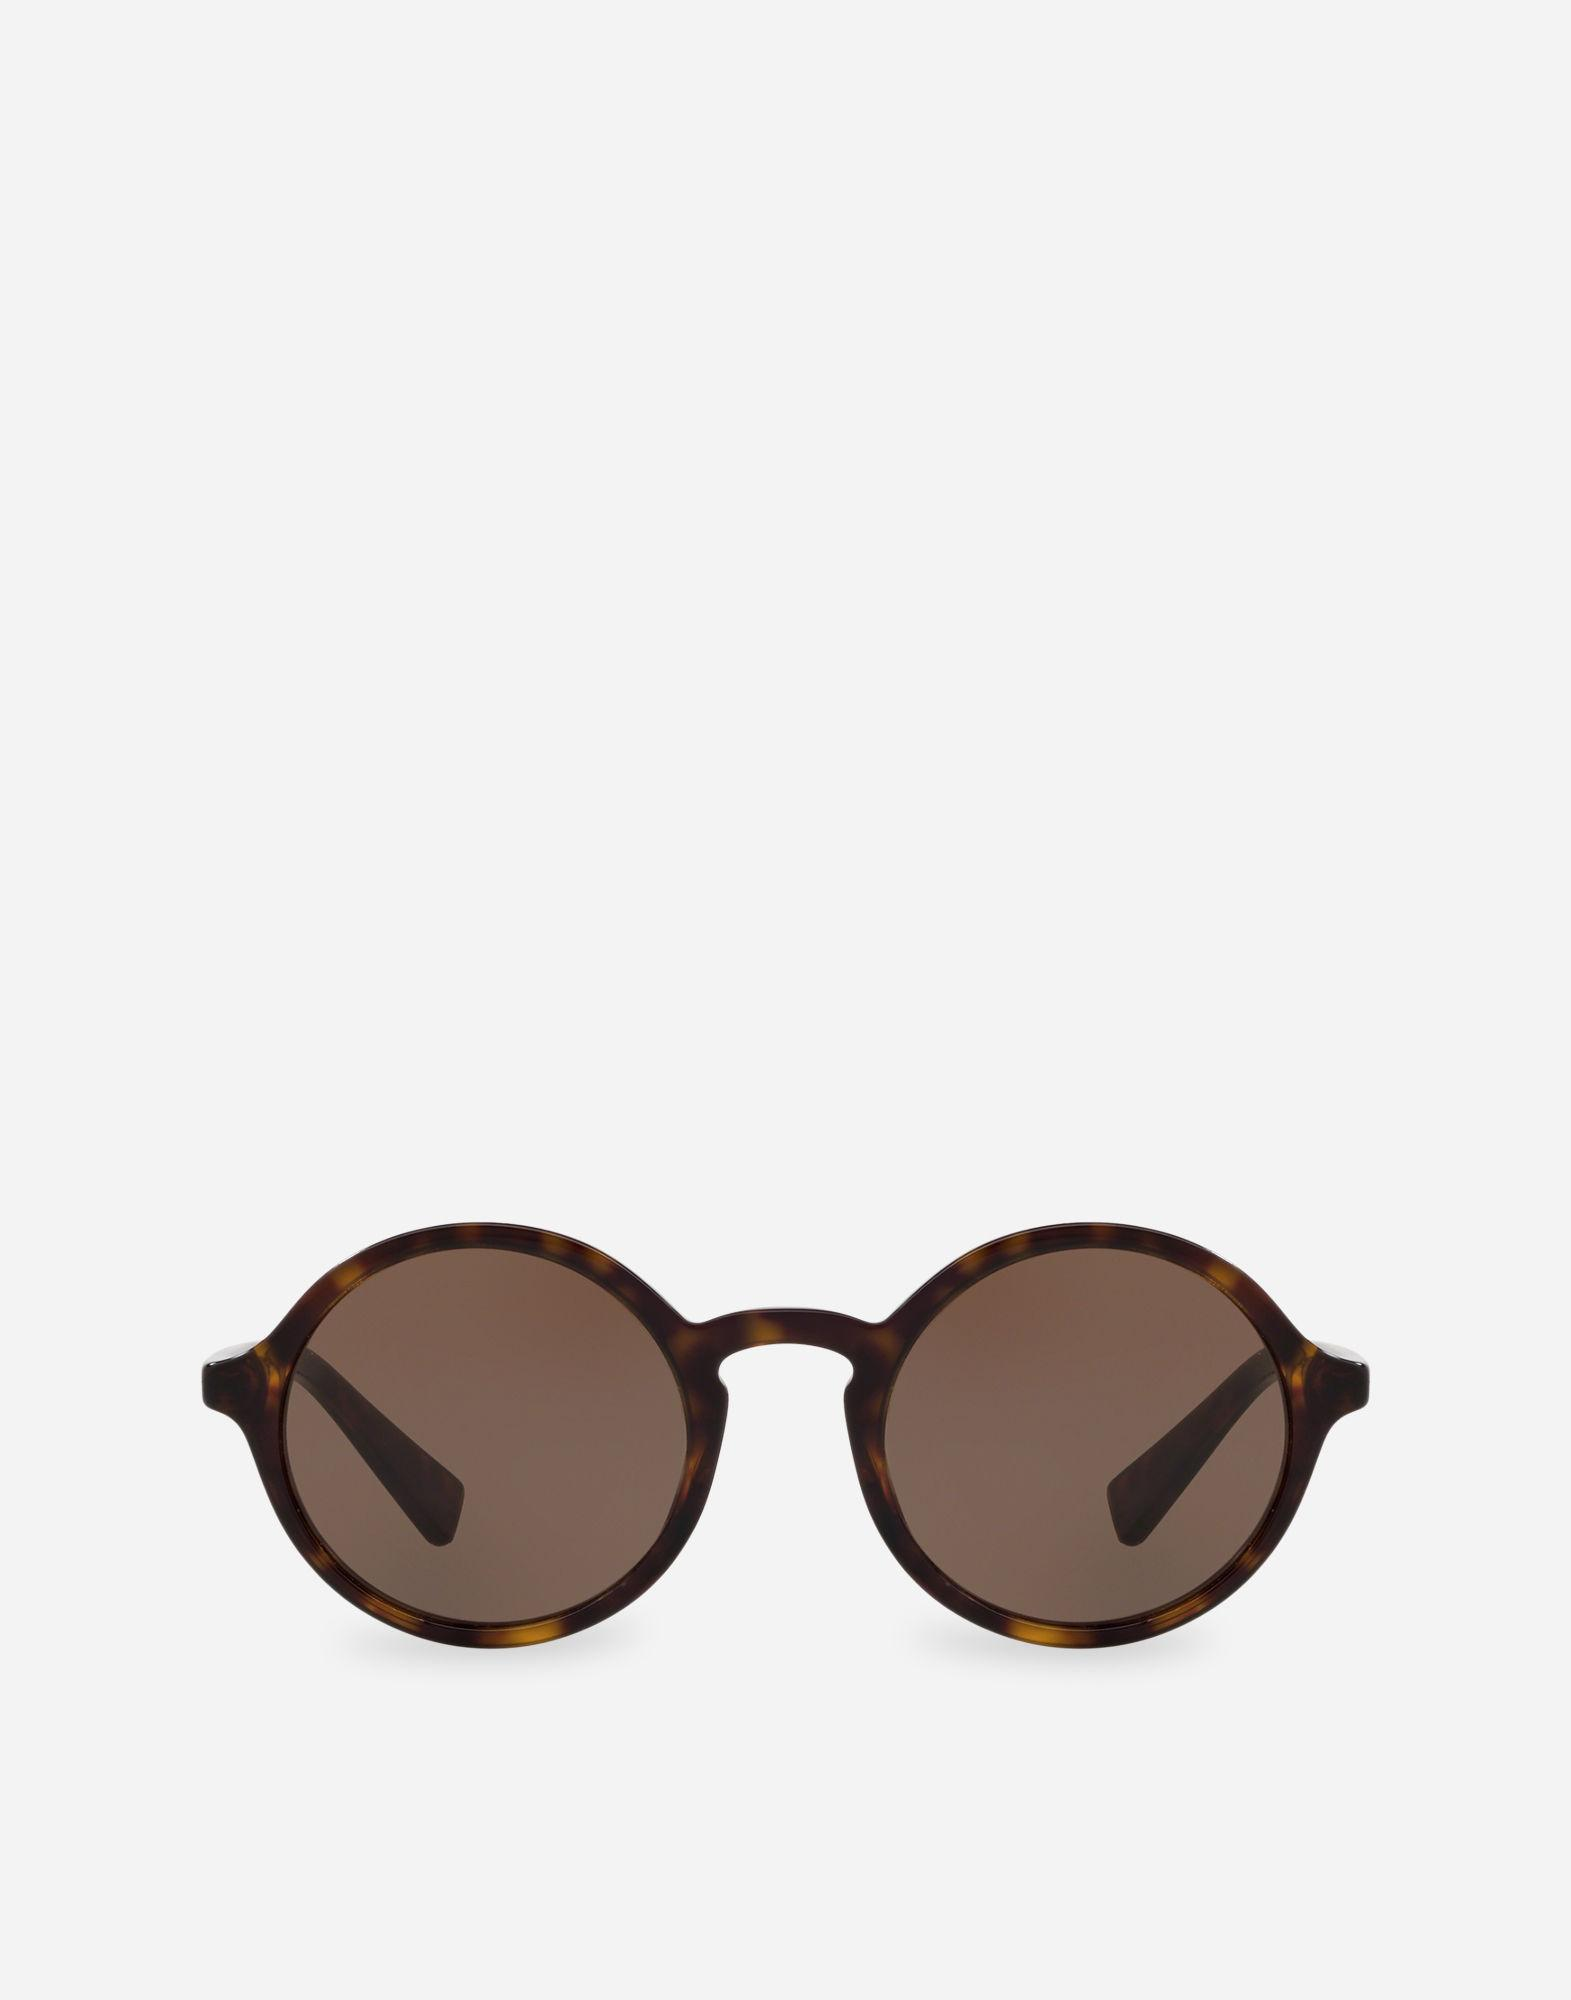 ecbc82a1da18 Dolce   Gabbana Round Acetate Sunglasses With Keyhole Bridge In Havana